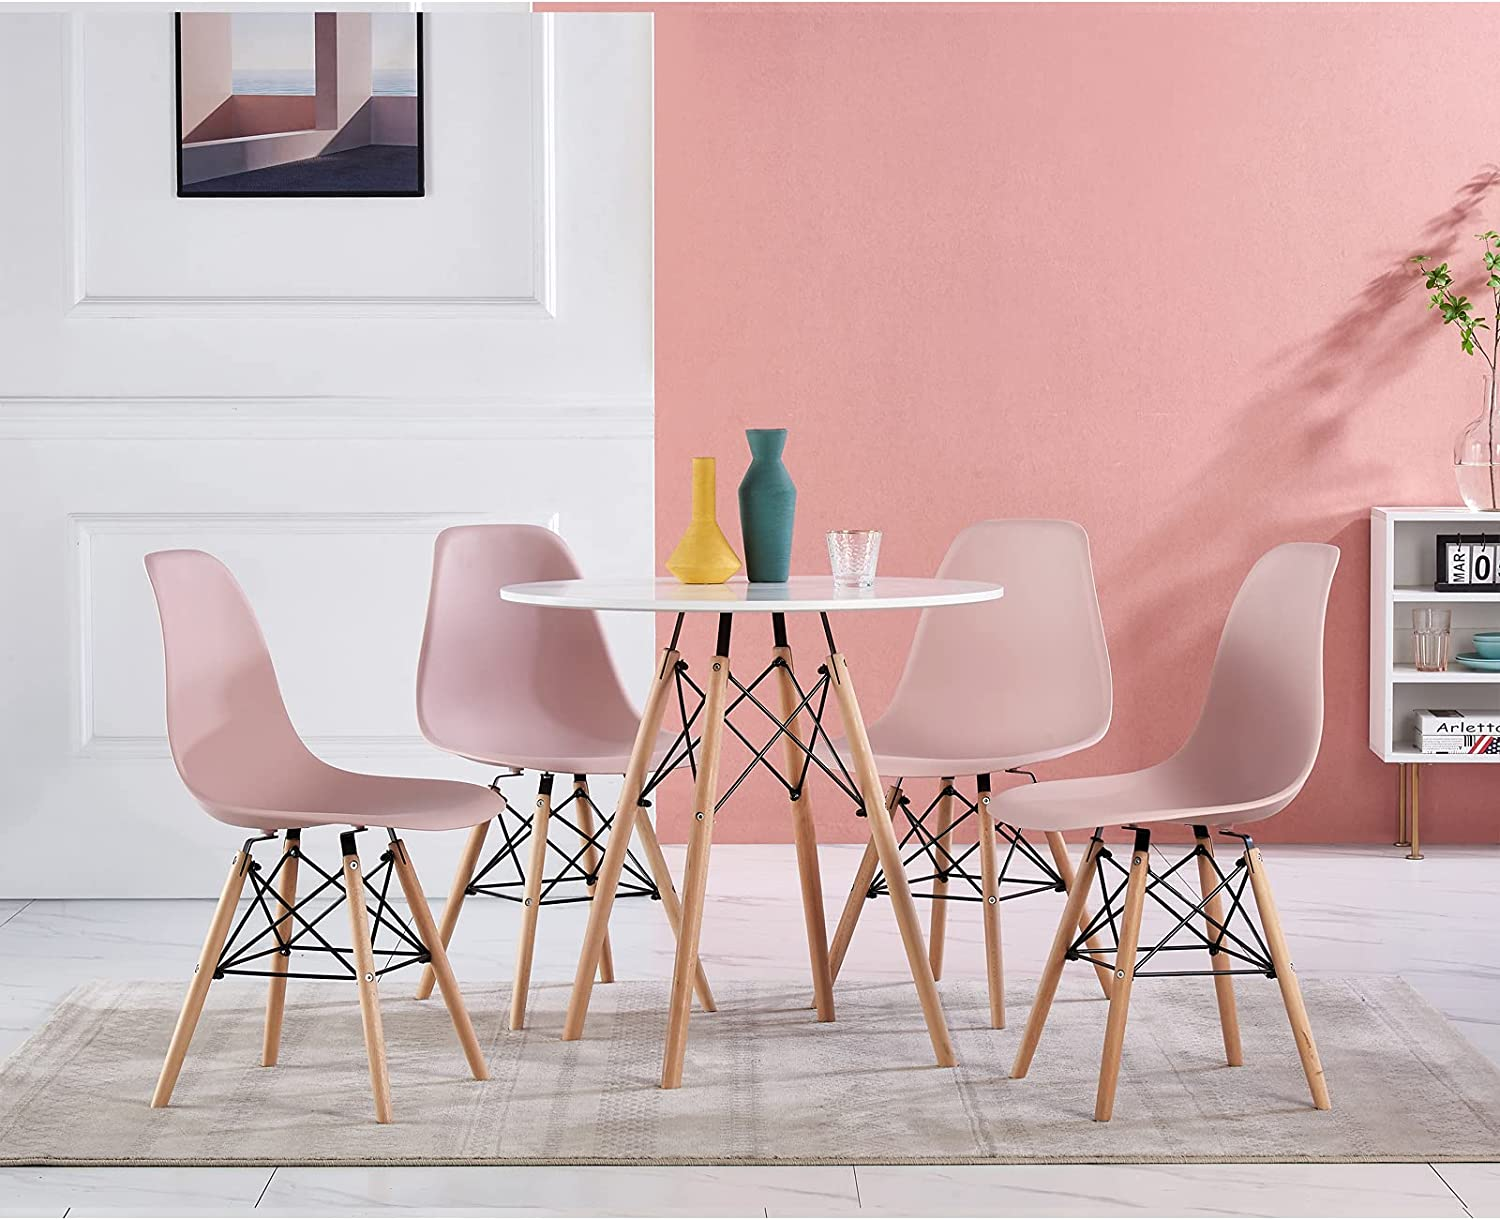 Buy ZOONFA Dining Table with Chairs Set of 9 White Plastic Chair ...